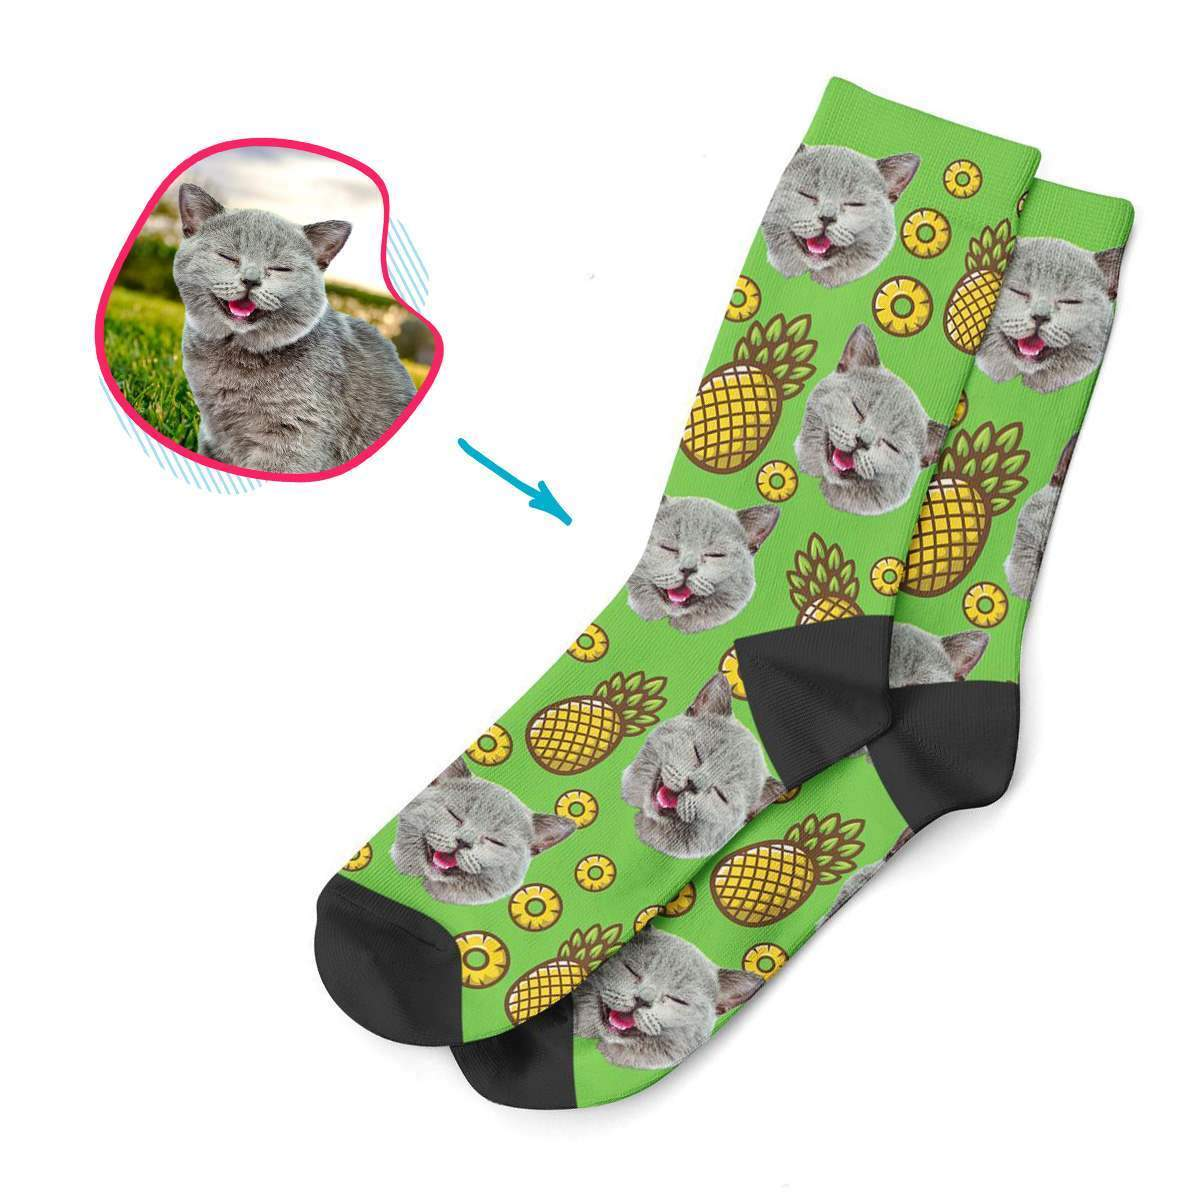 Fruits socks - Standard Socks